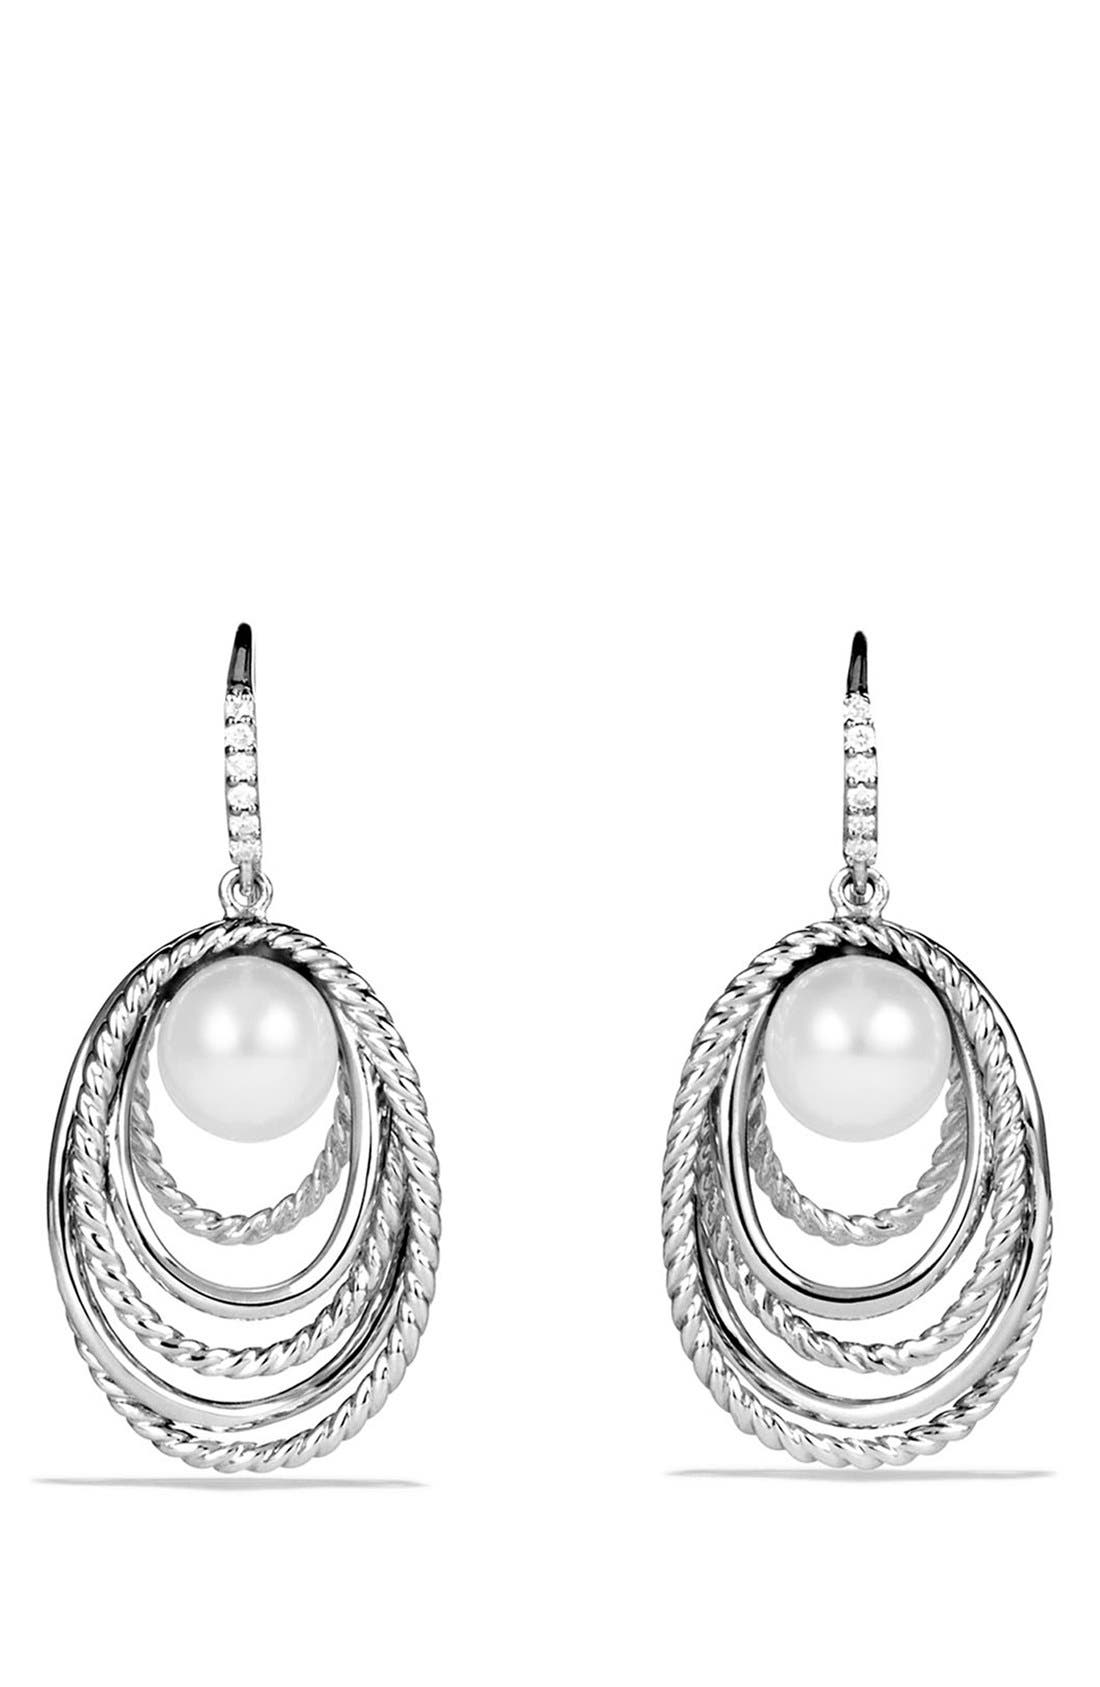 'Crossover' Pearl Drop Earrings with Diamonds,                             Main thumbnail 1, color,                             101